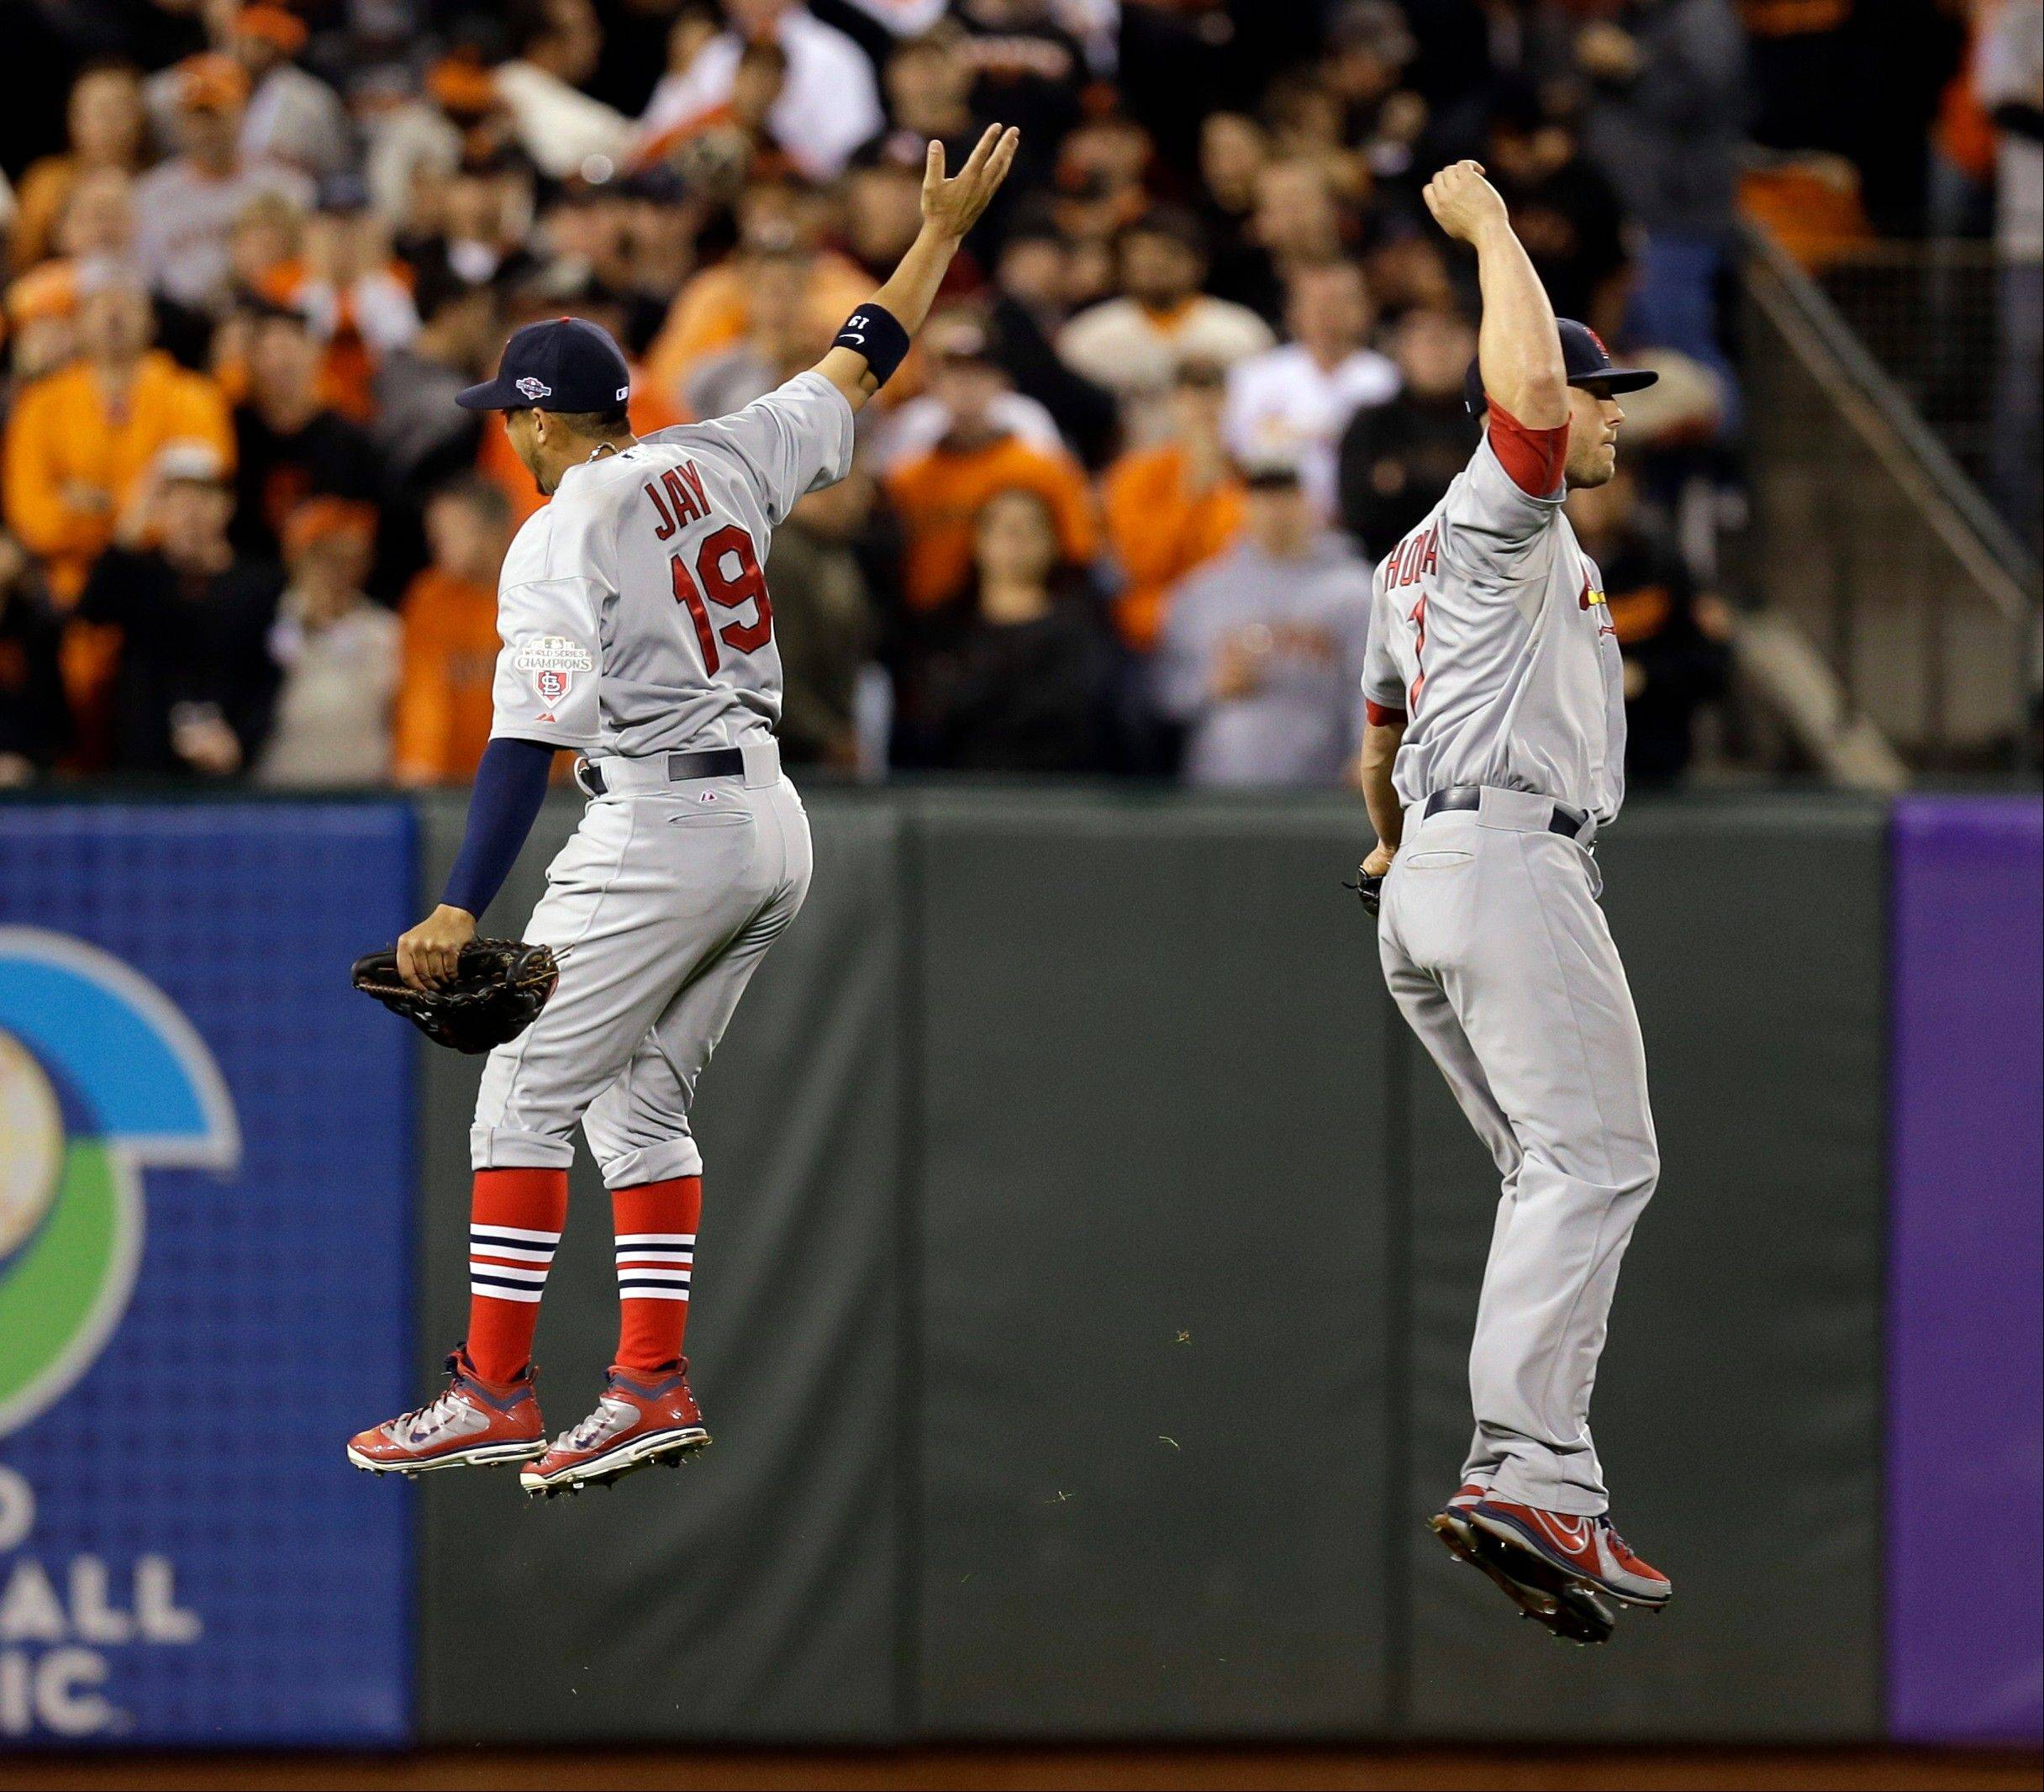 St. Louis Cardinals' Jon Jay (19) and Matt Holliday celebrate after Game 1 of baseball's National League championship series against the San Francisco Giants Sunday in San Francisco. The Cardinals won 6-4.